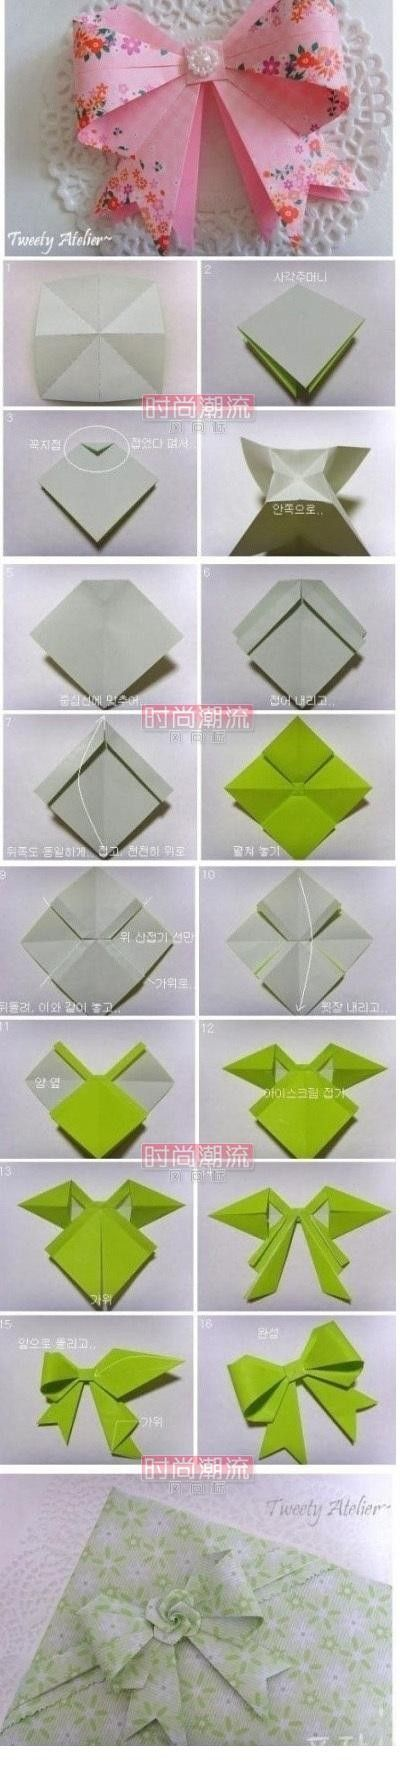 Sonia, Check out the bottom of the bow tails. Wonder how they got them. bow origami